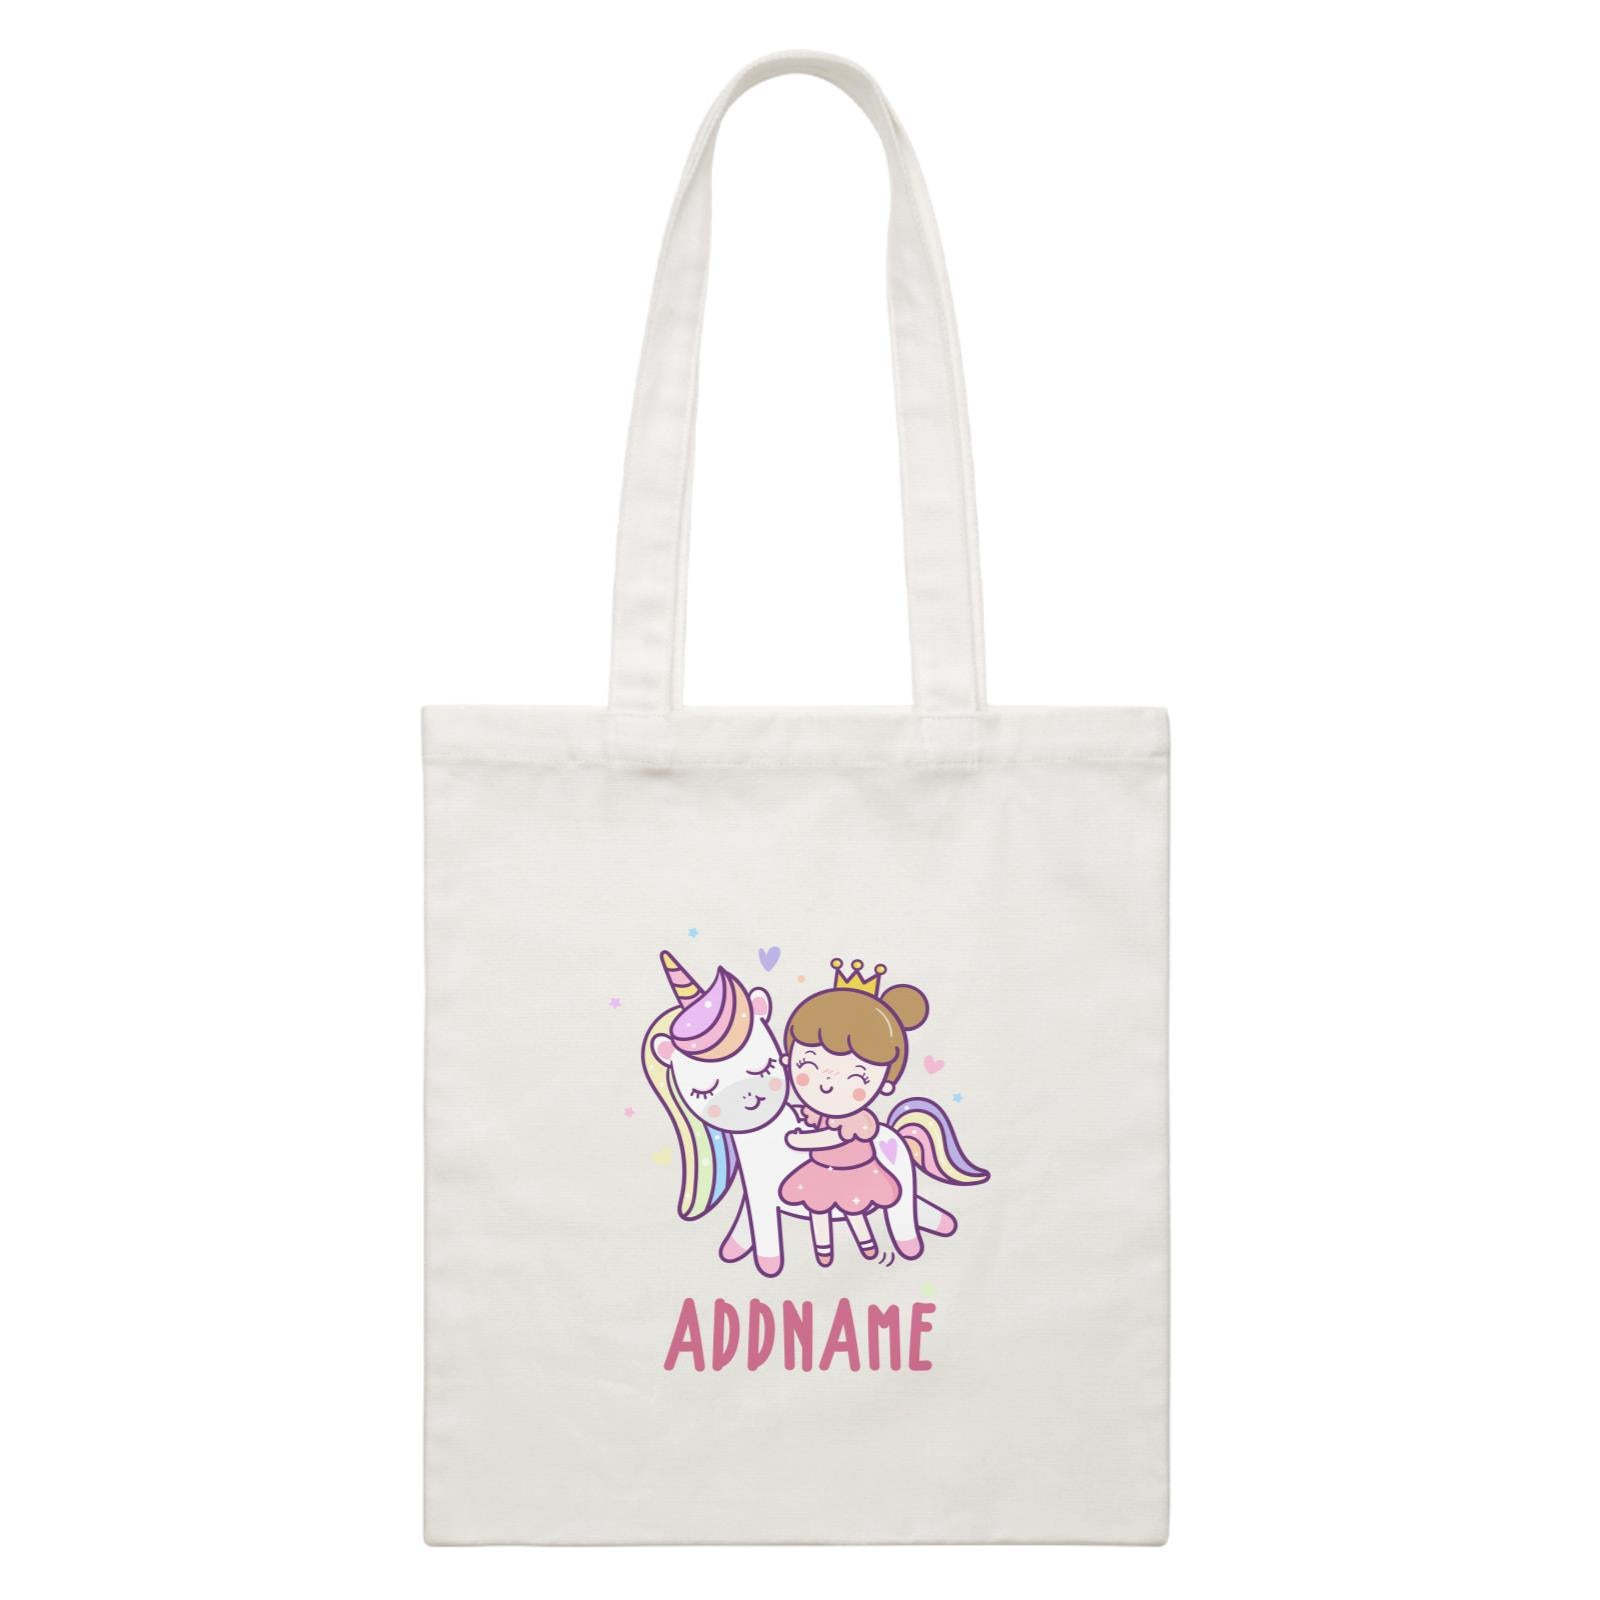 Unicorn And Princess Series Cute Unicorn With Princess Addname White Canvas Bag